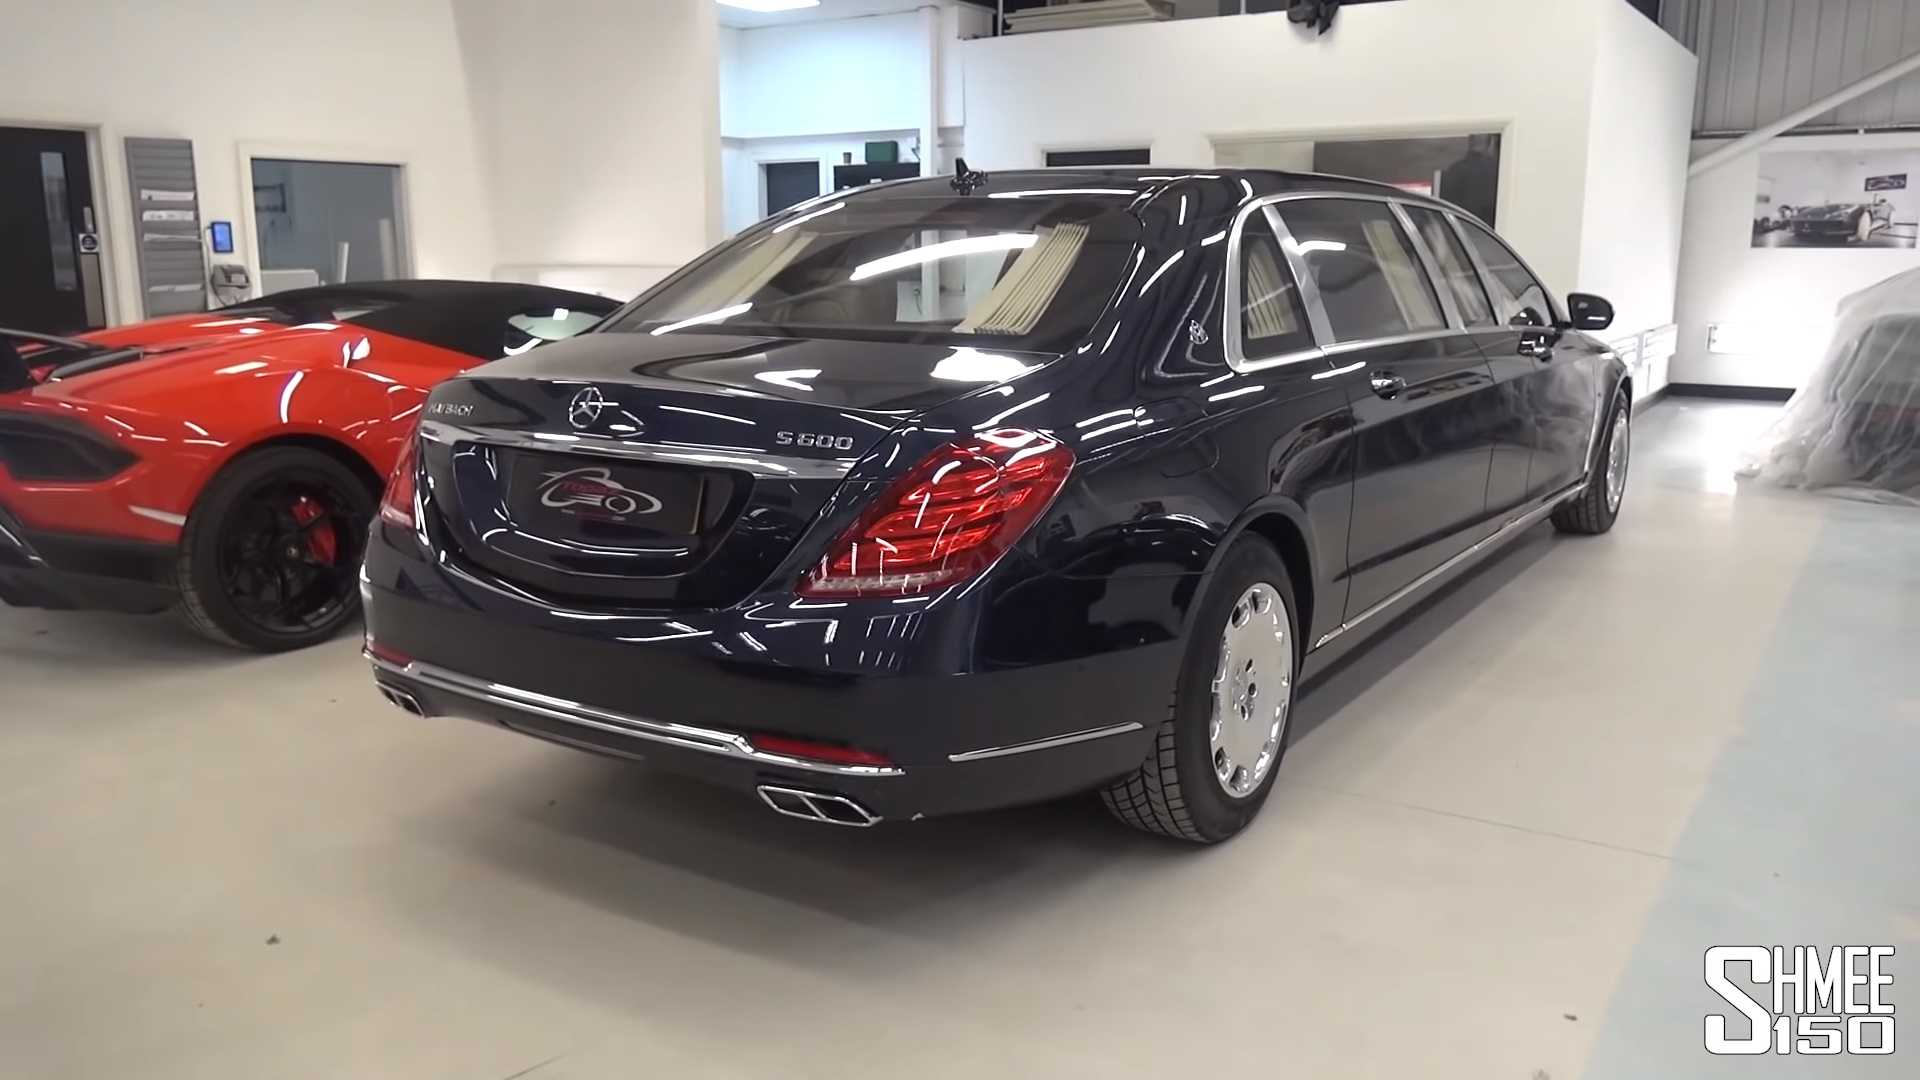 Have A Look Inside The Gigantic Mercedes Maybach S600 Pullman